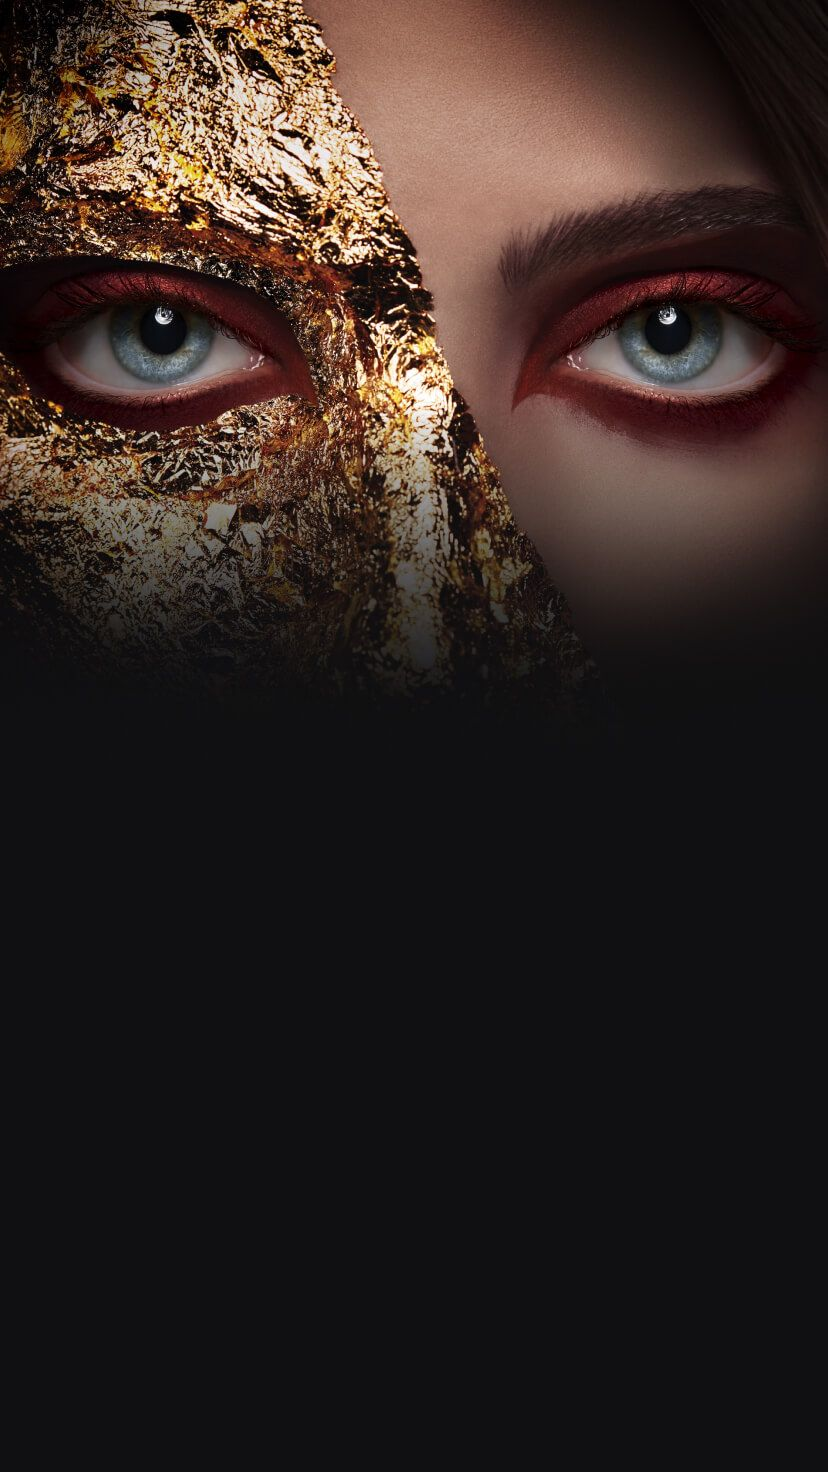 A woman with half her face in gold foil.